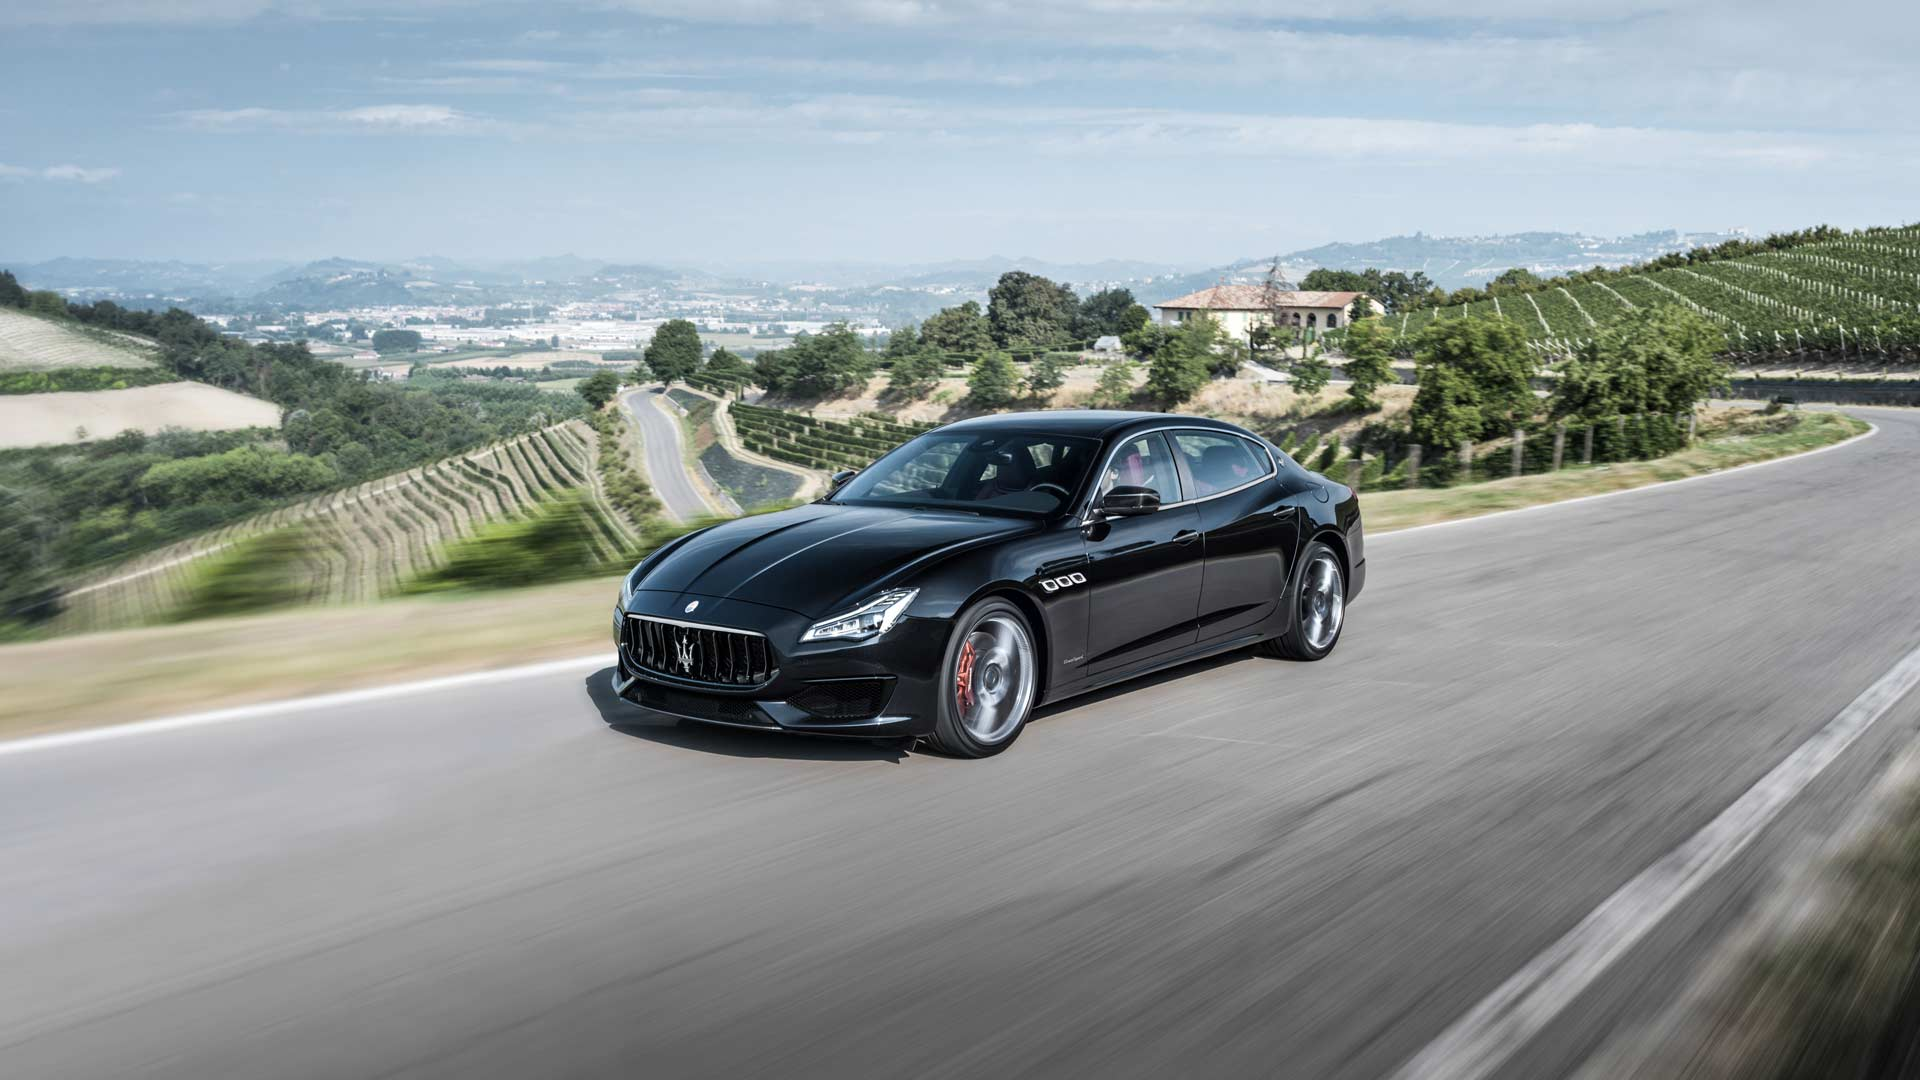 maserati quattroporte gts launched in india at rs 2 7 crore autodevot. Black Bedroom Furniture Sets. Home Design Ideas